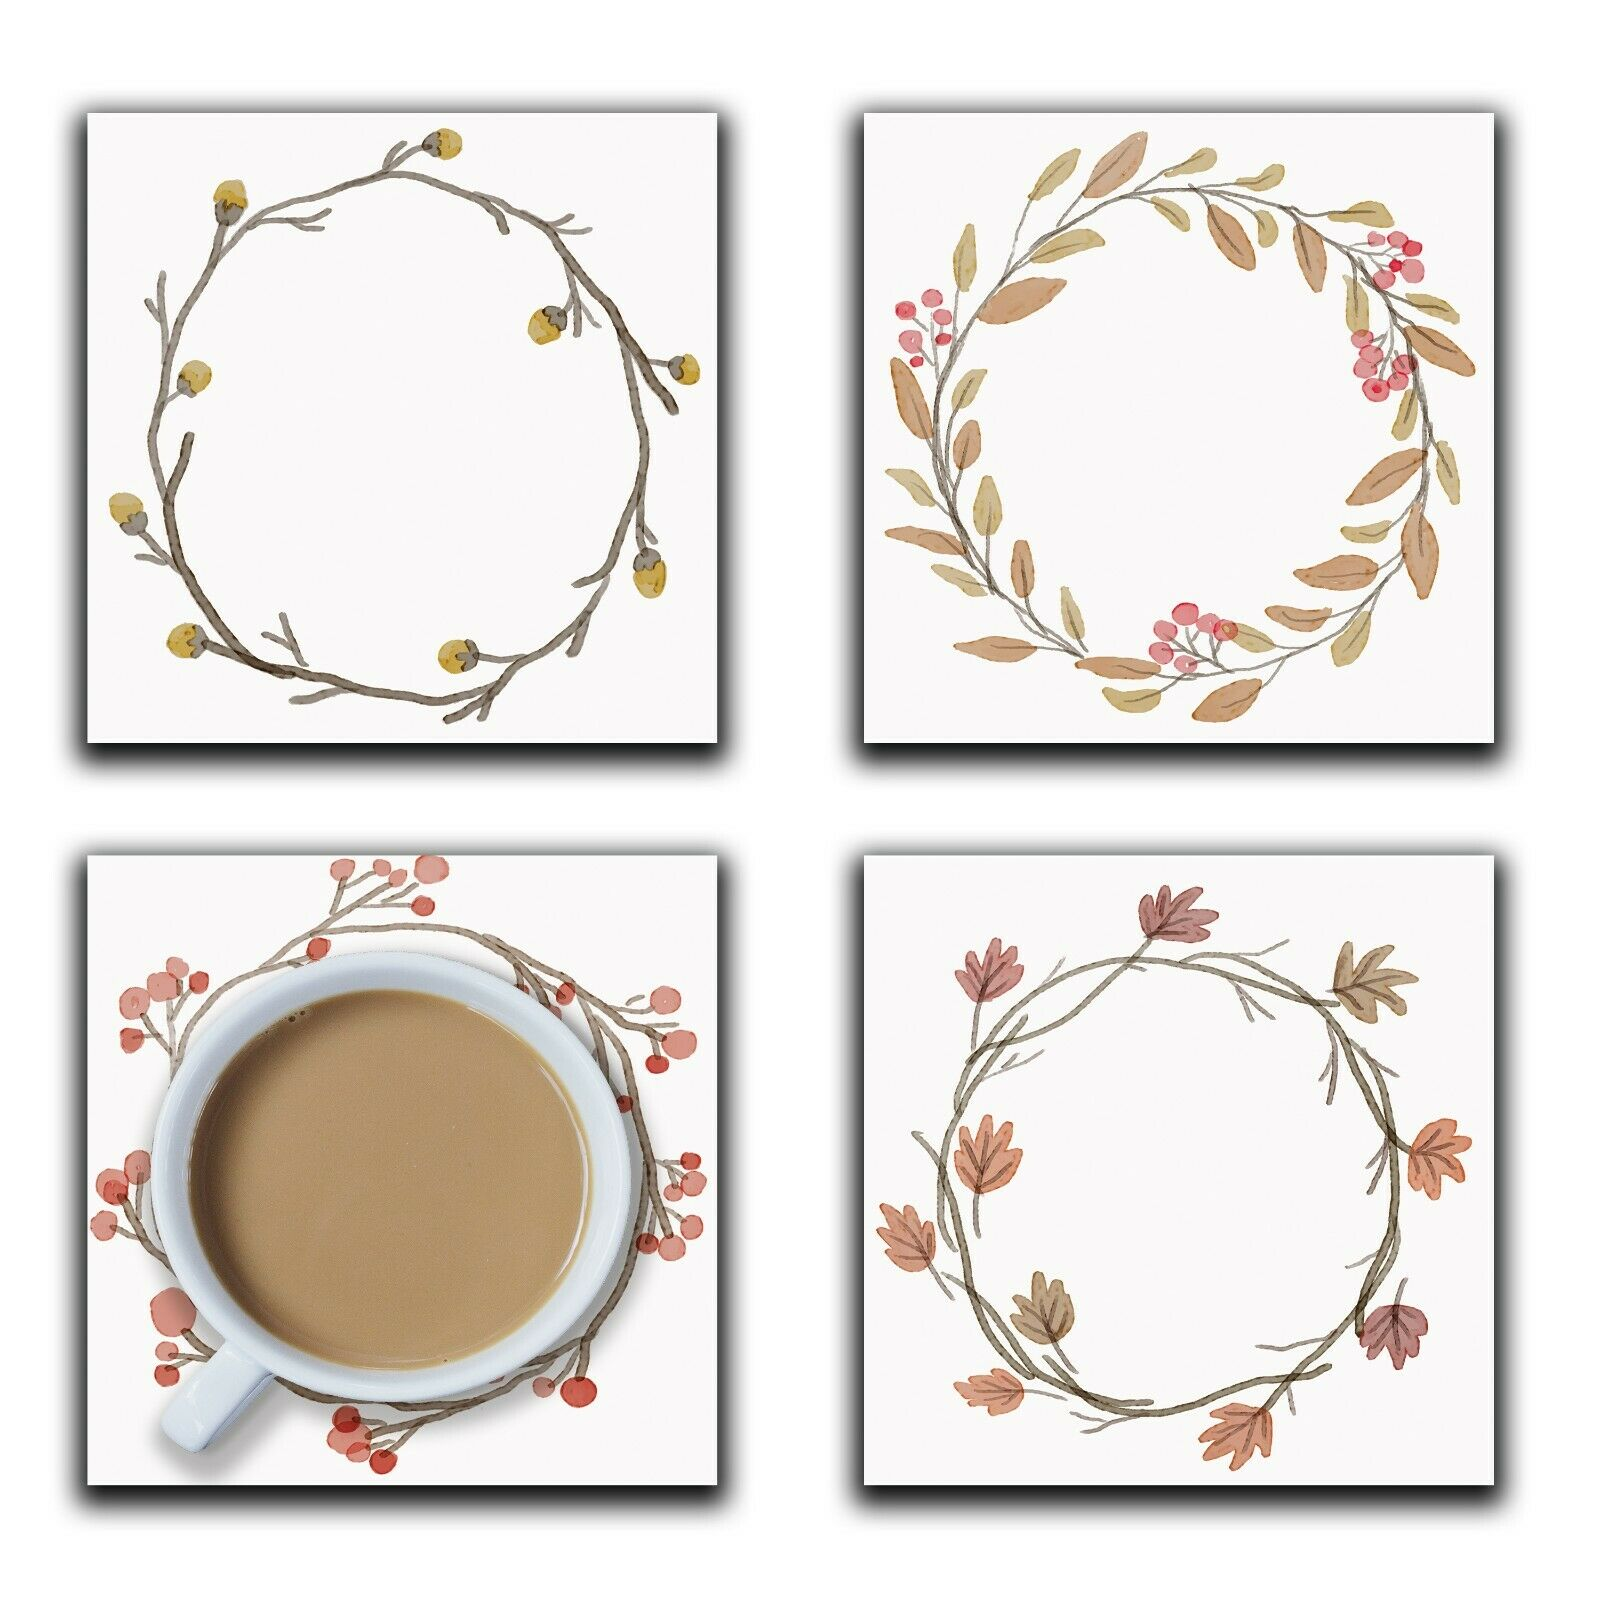 Embossi Printed Winter Wreaths, wood or ceramic tile, set of 4 Coasters